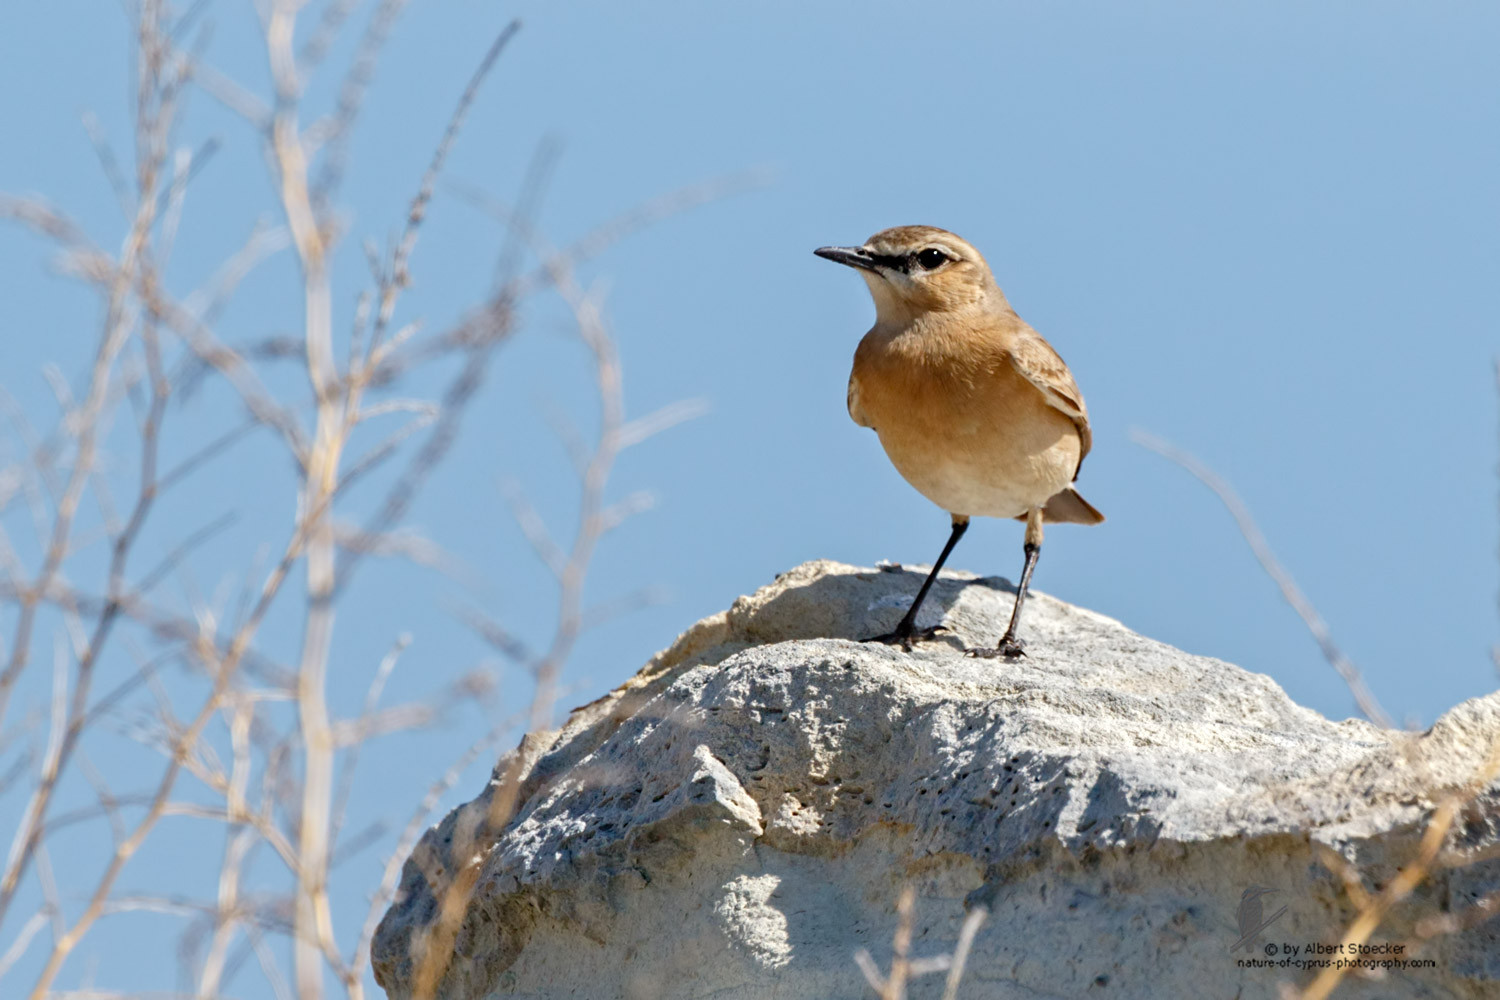 Oenanthe isabellina - Isabelline Wheatear - Isabellsteinschmätzer, Cyprus, Akrotiri, Ladys Miles, March 2016